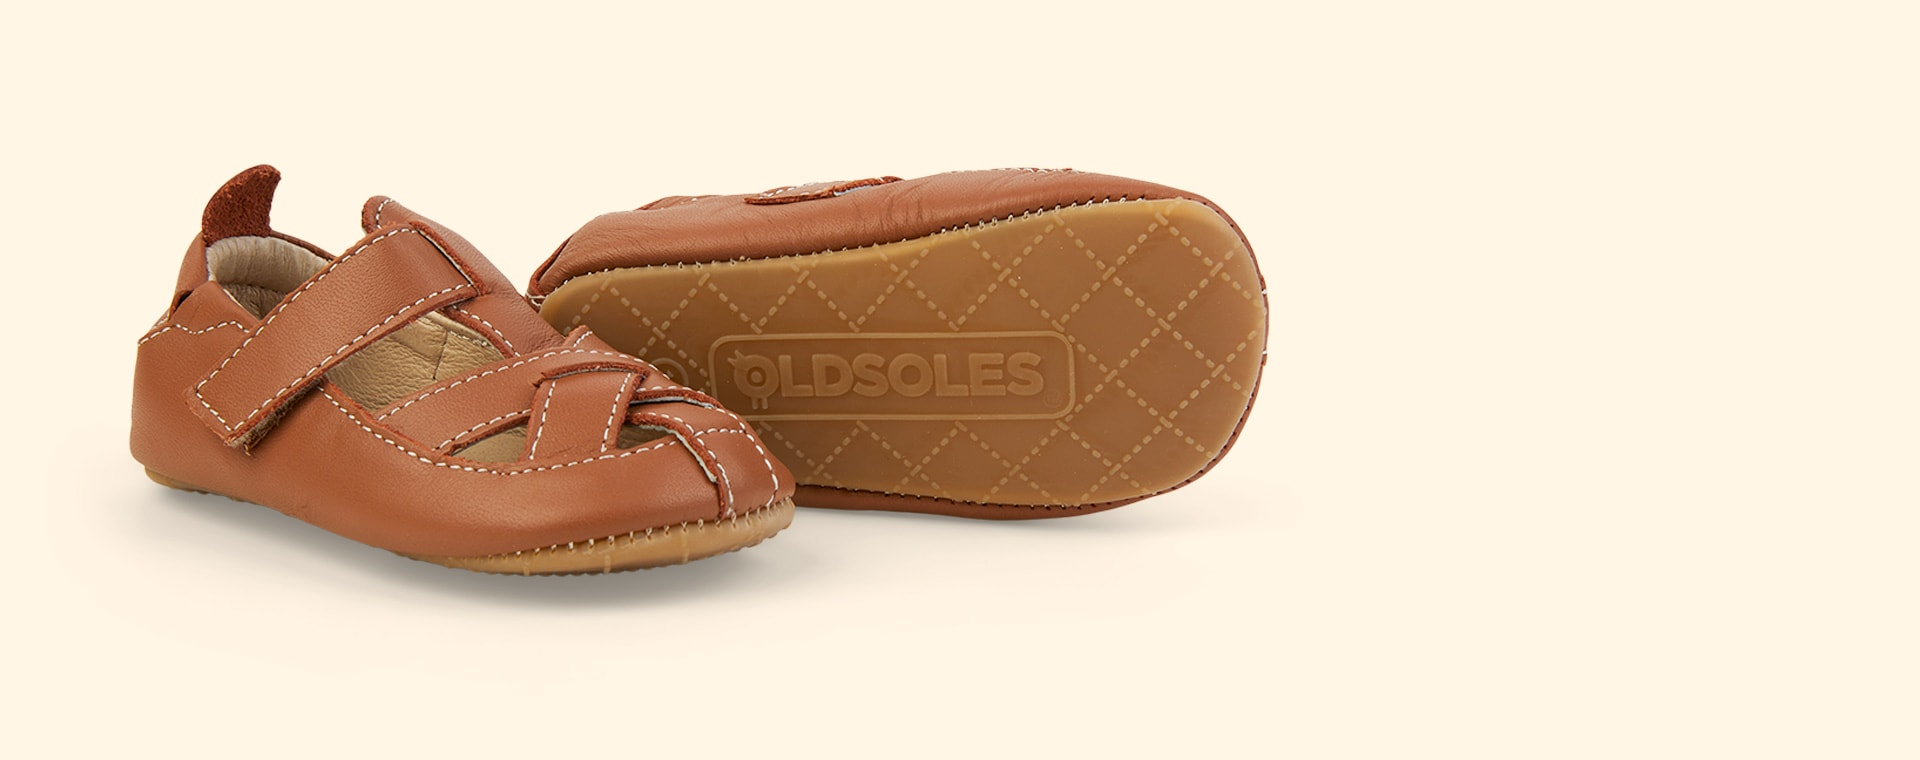 Tan old soles Thread Shoe